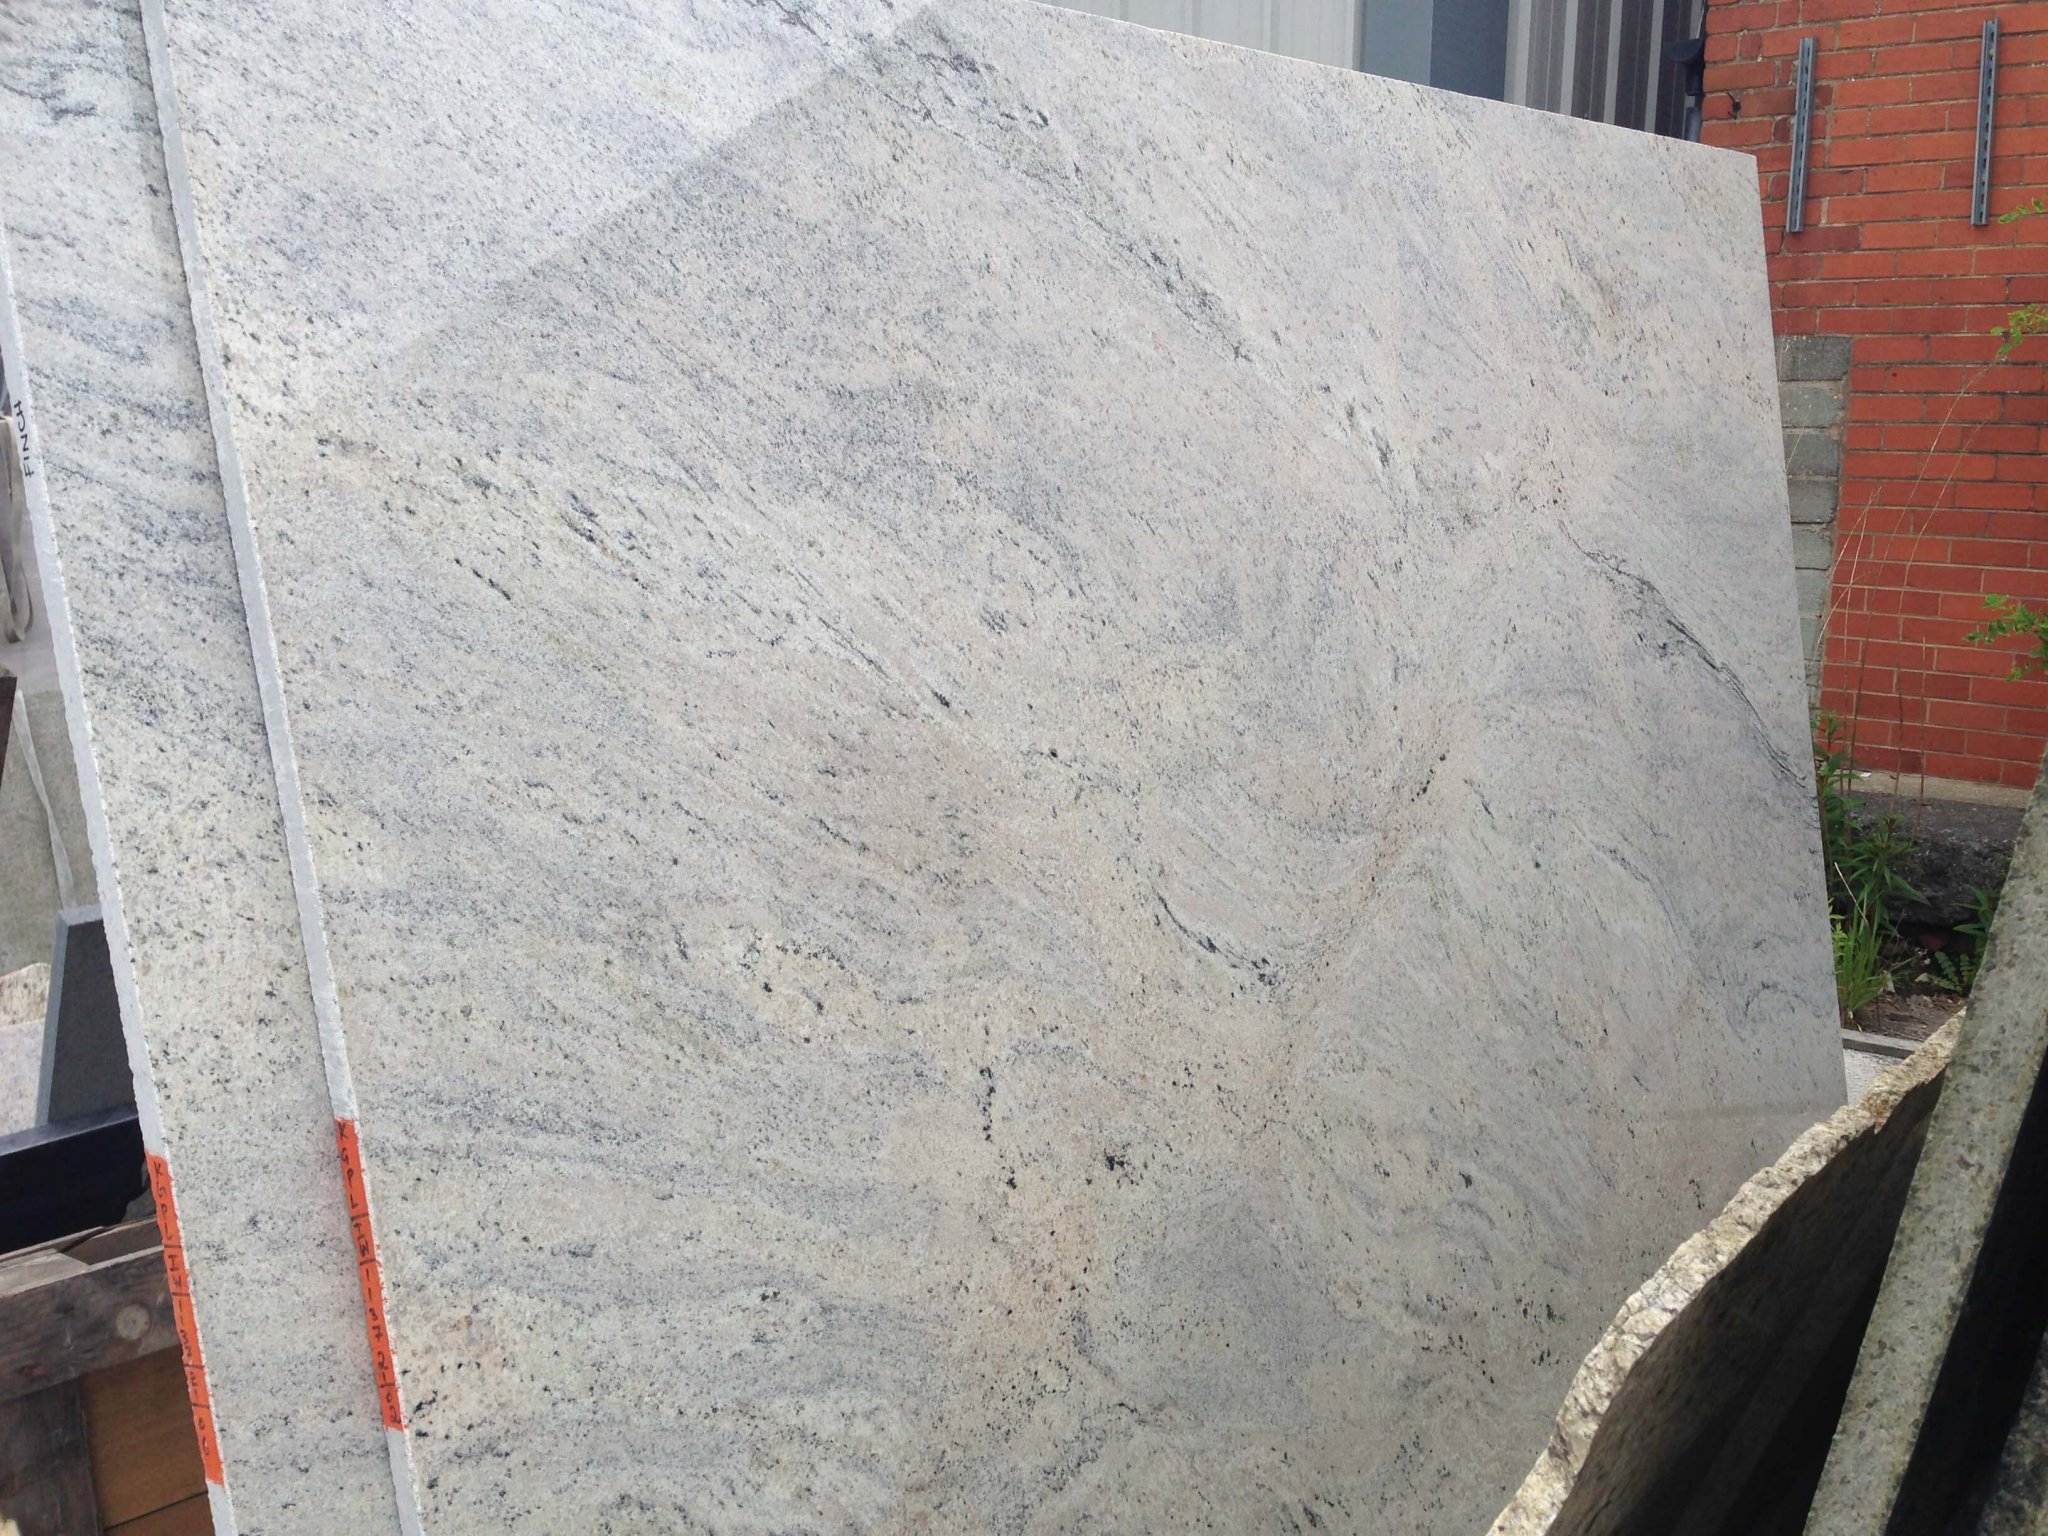 Cielo de Marfil granite worktop slab